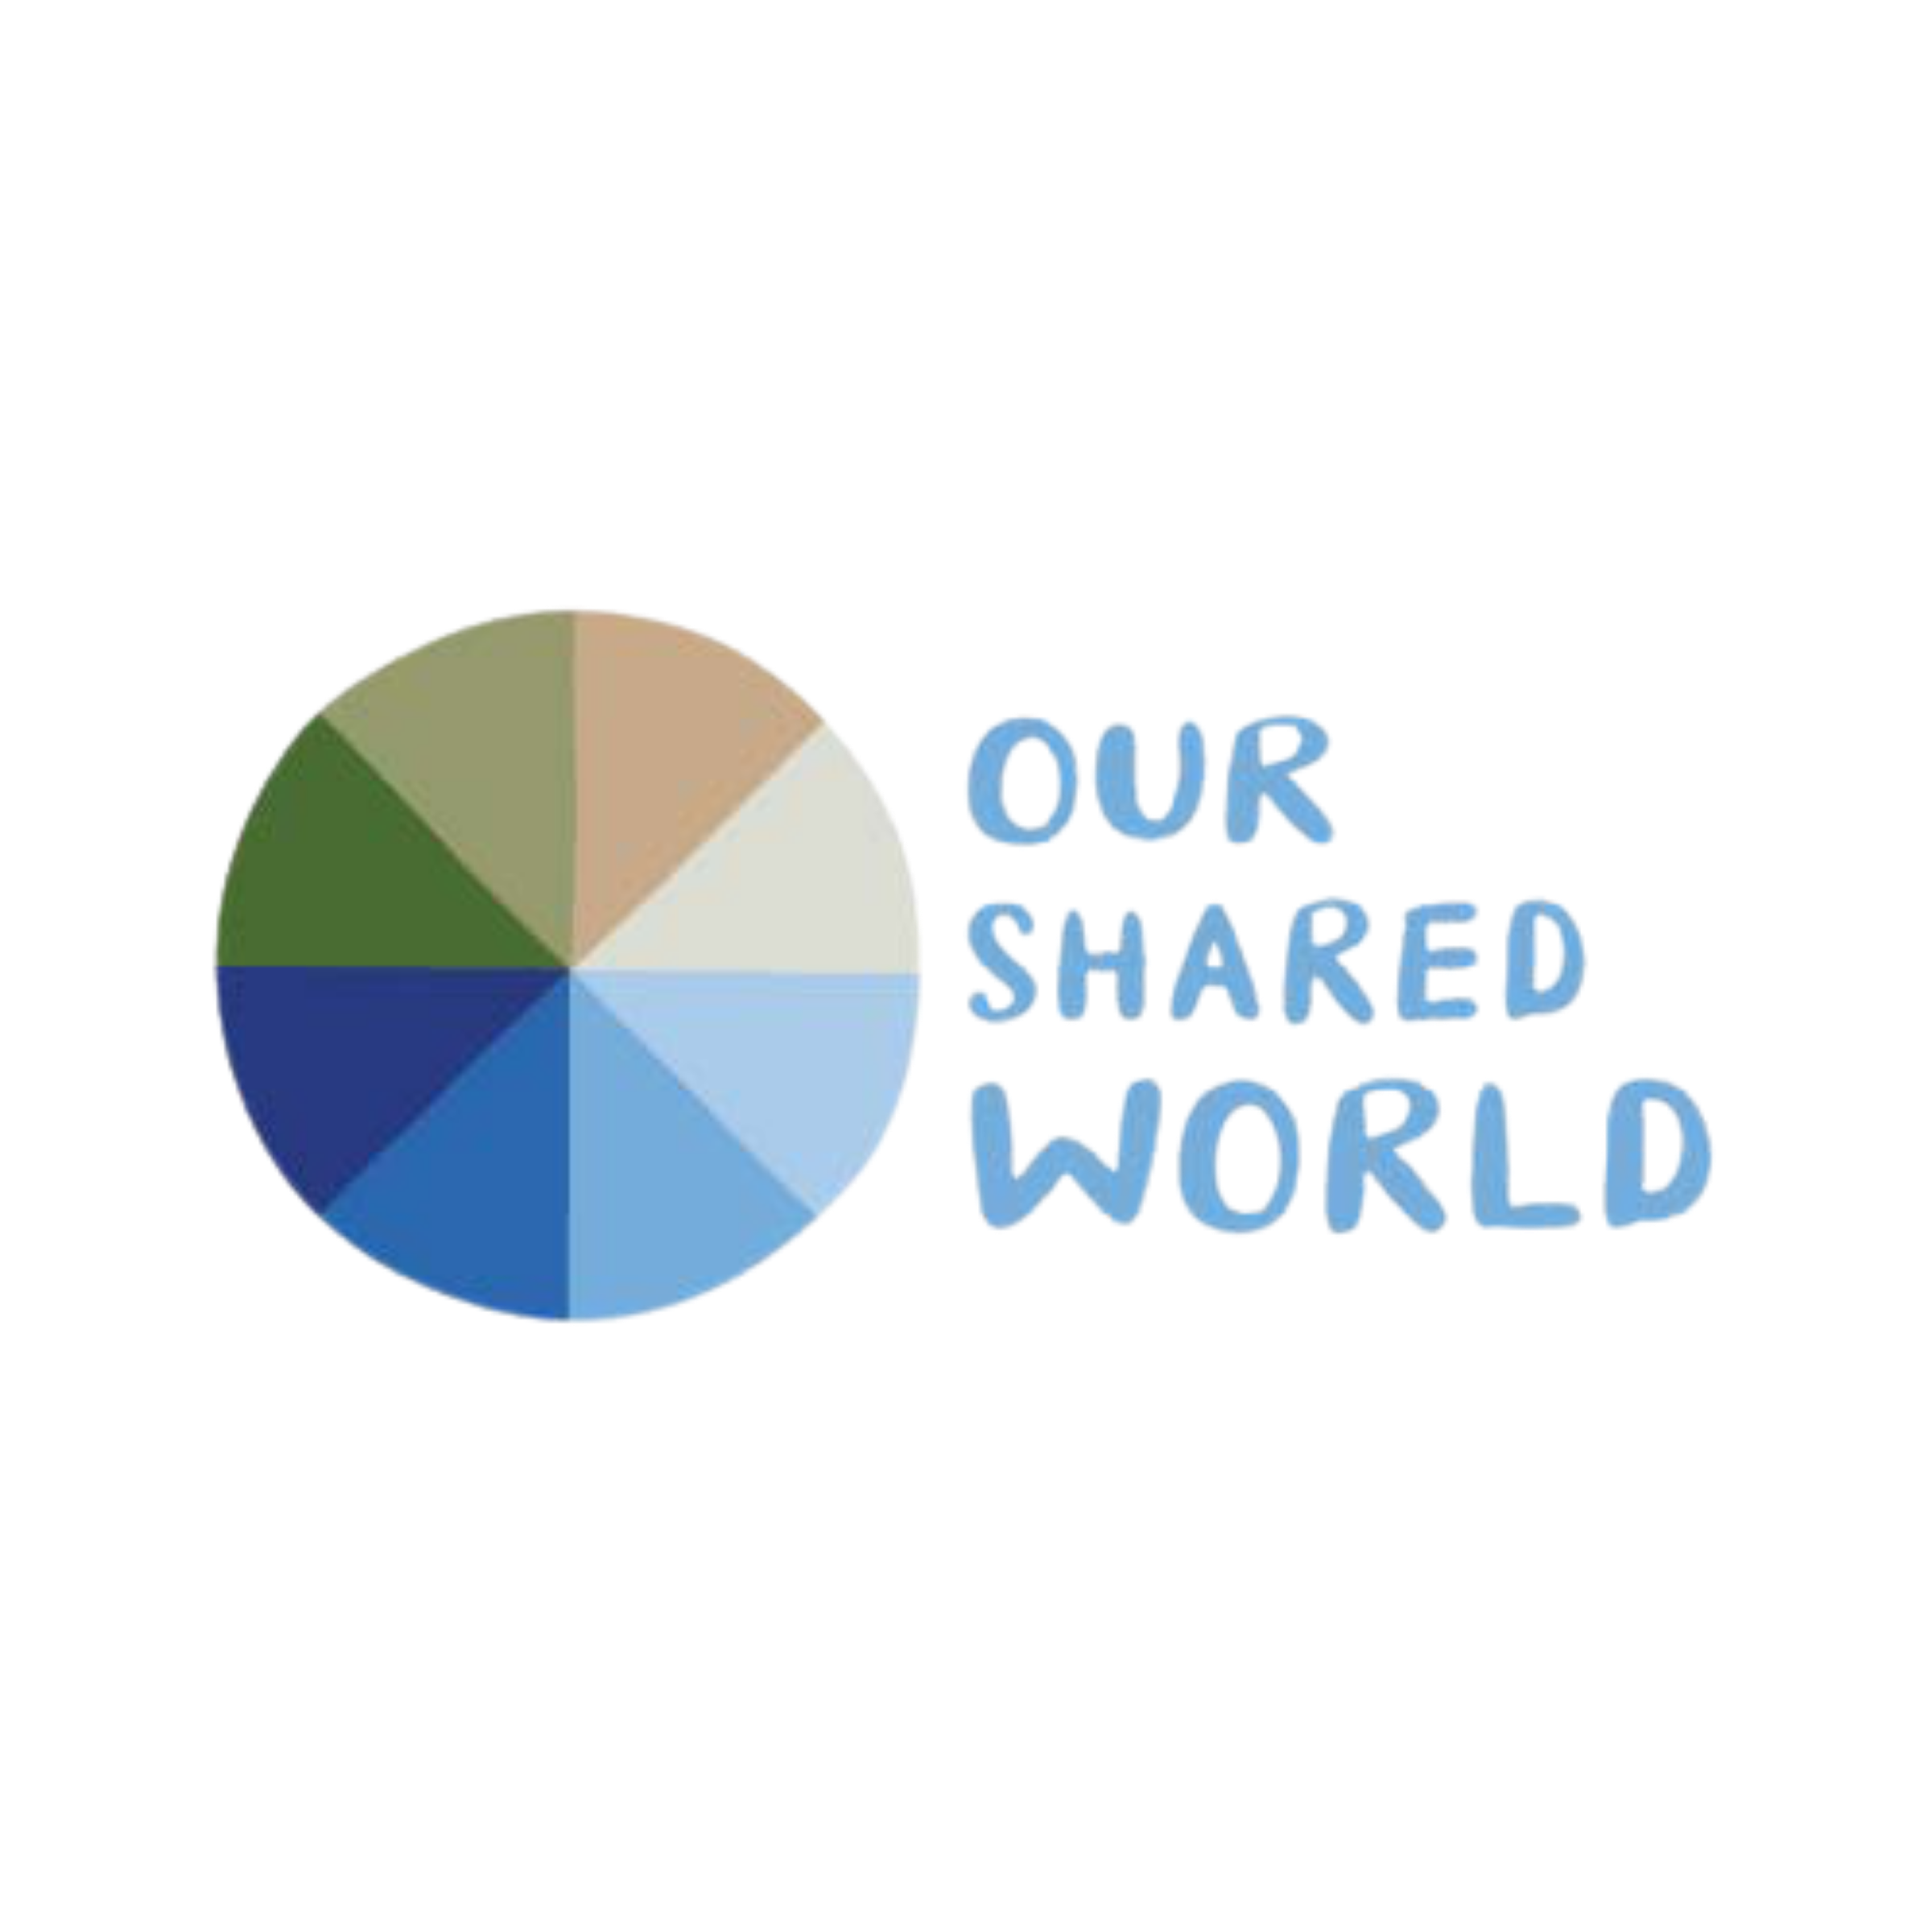 Our Shared World